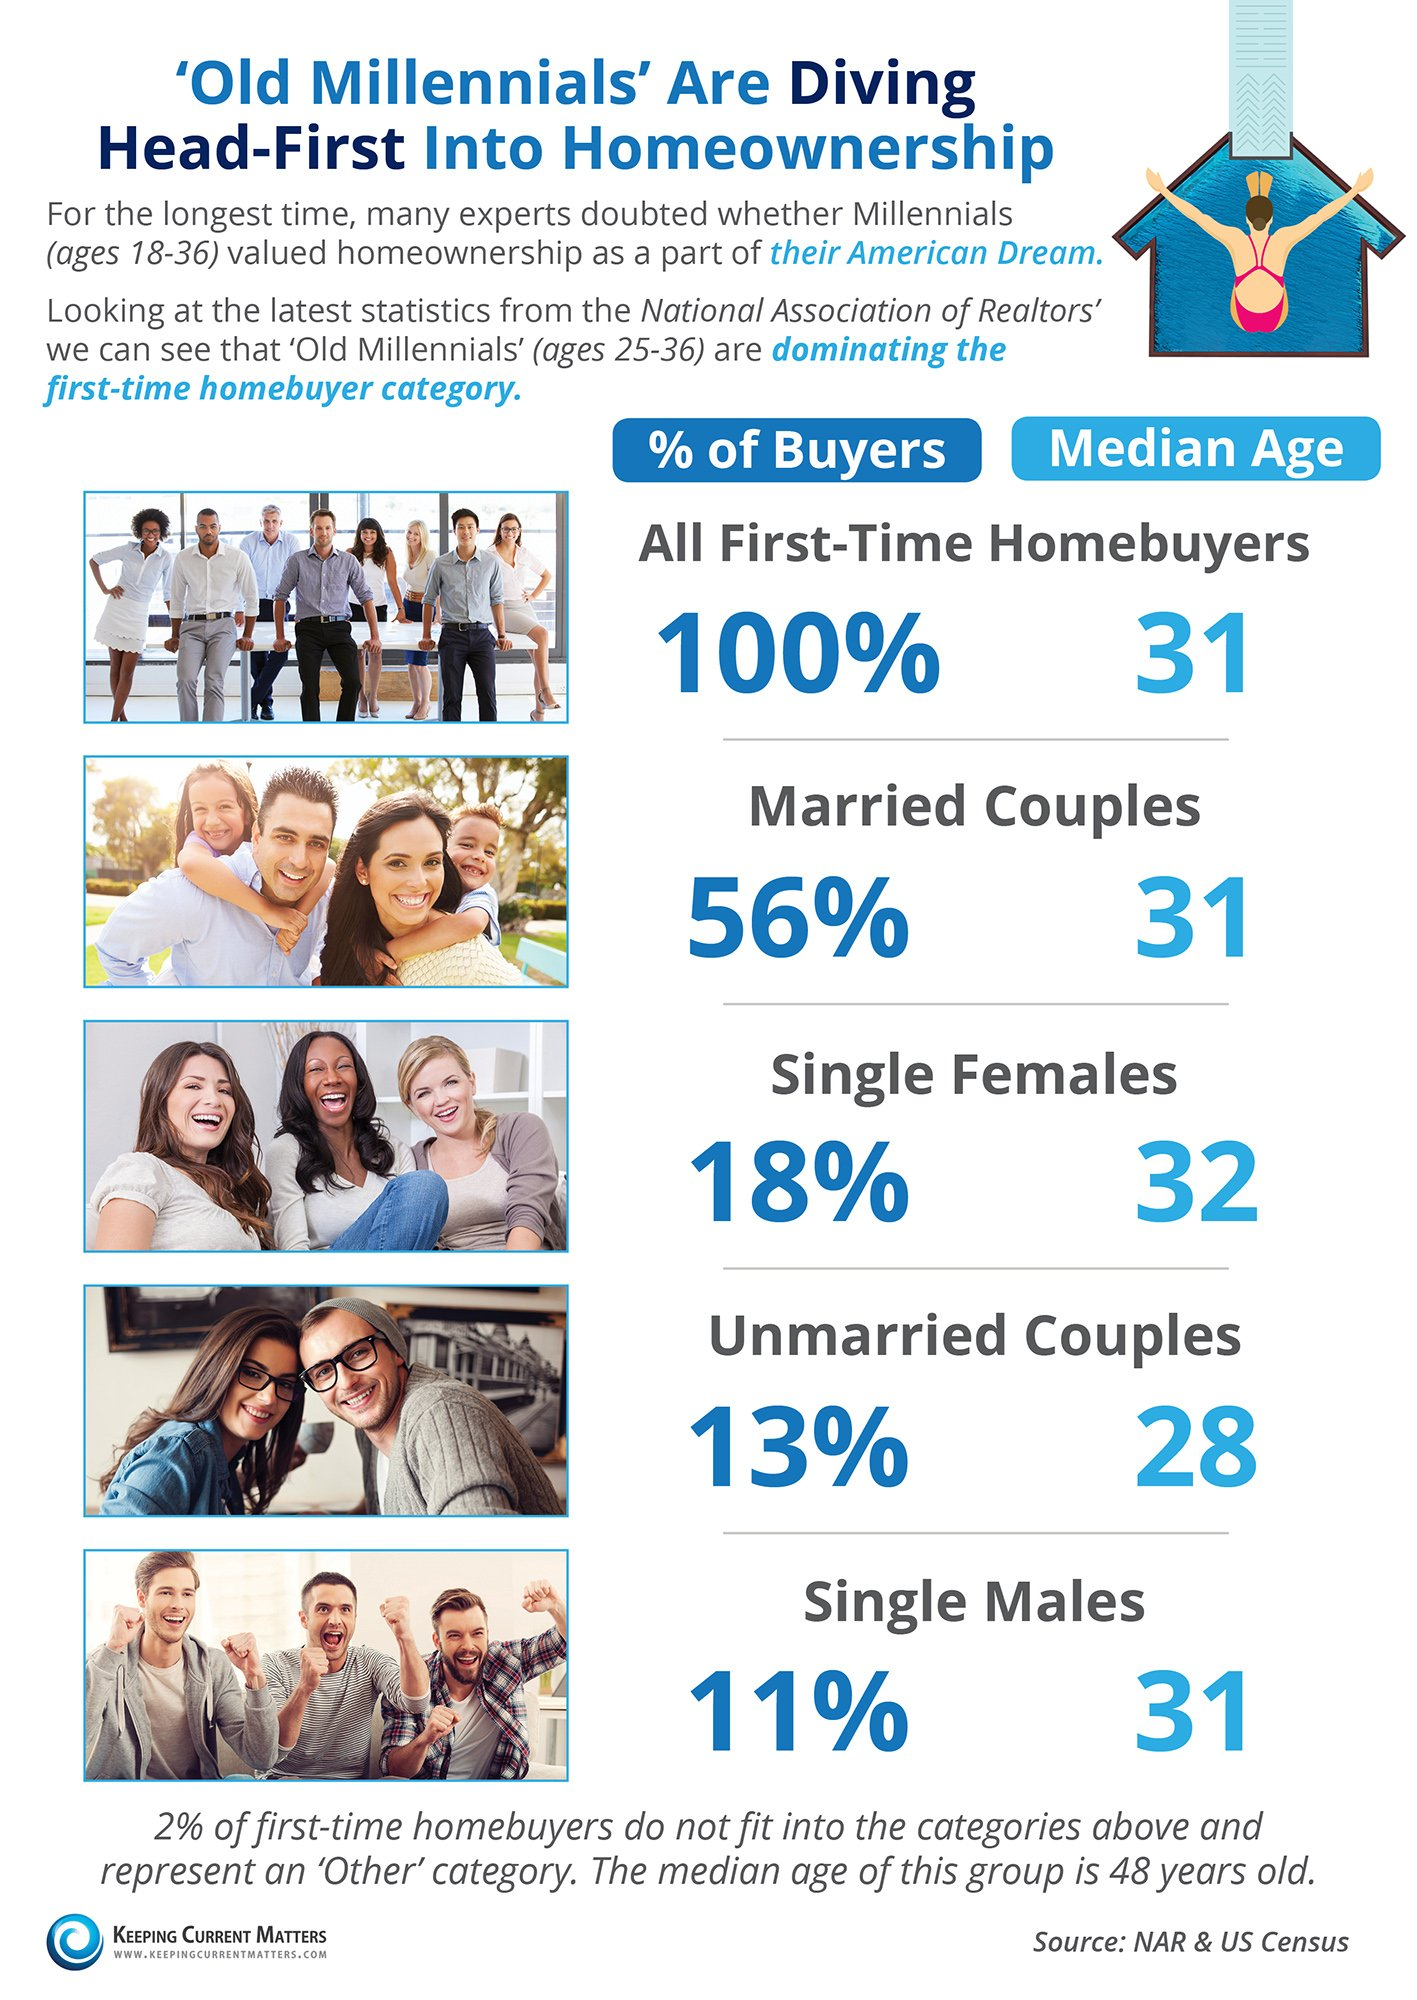 'Old Millennials' Are Diving Head-First into Homeownership [INFOGRAPHIC] | Keeping Current Matters